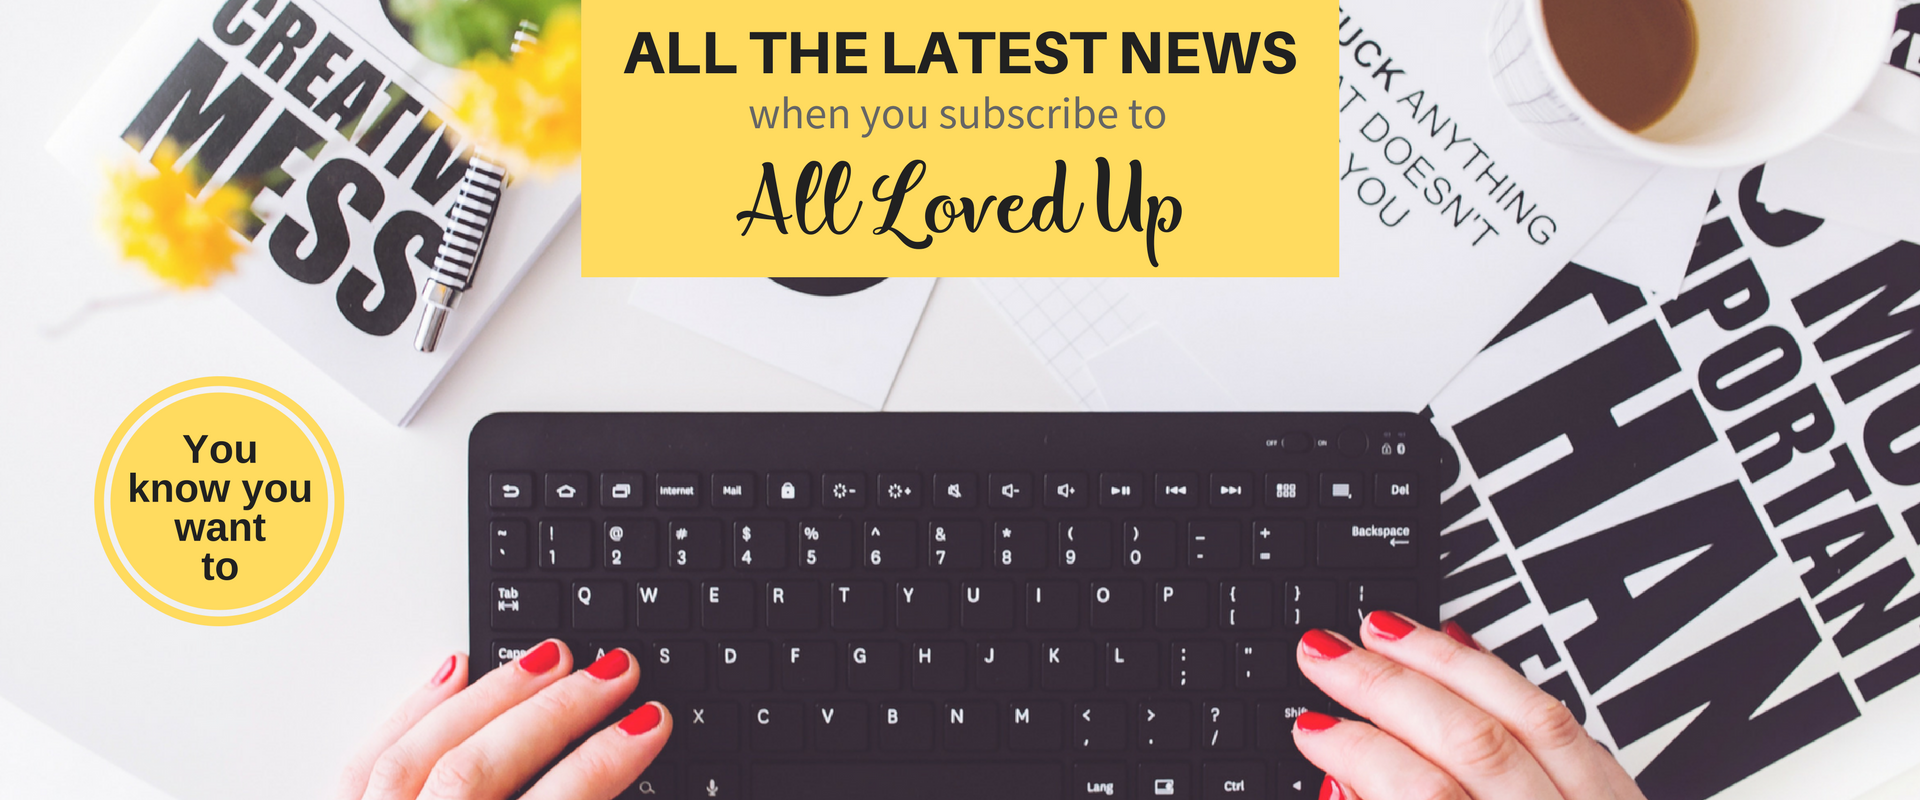 GET THE LATEST NEWS revised